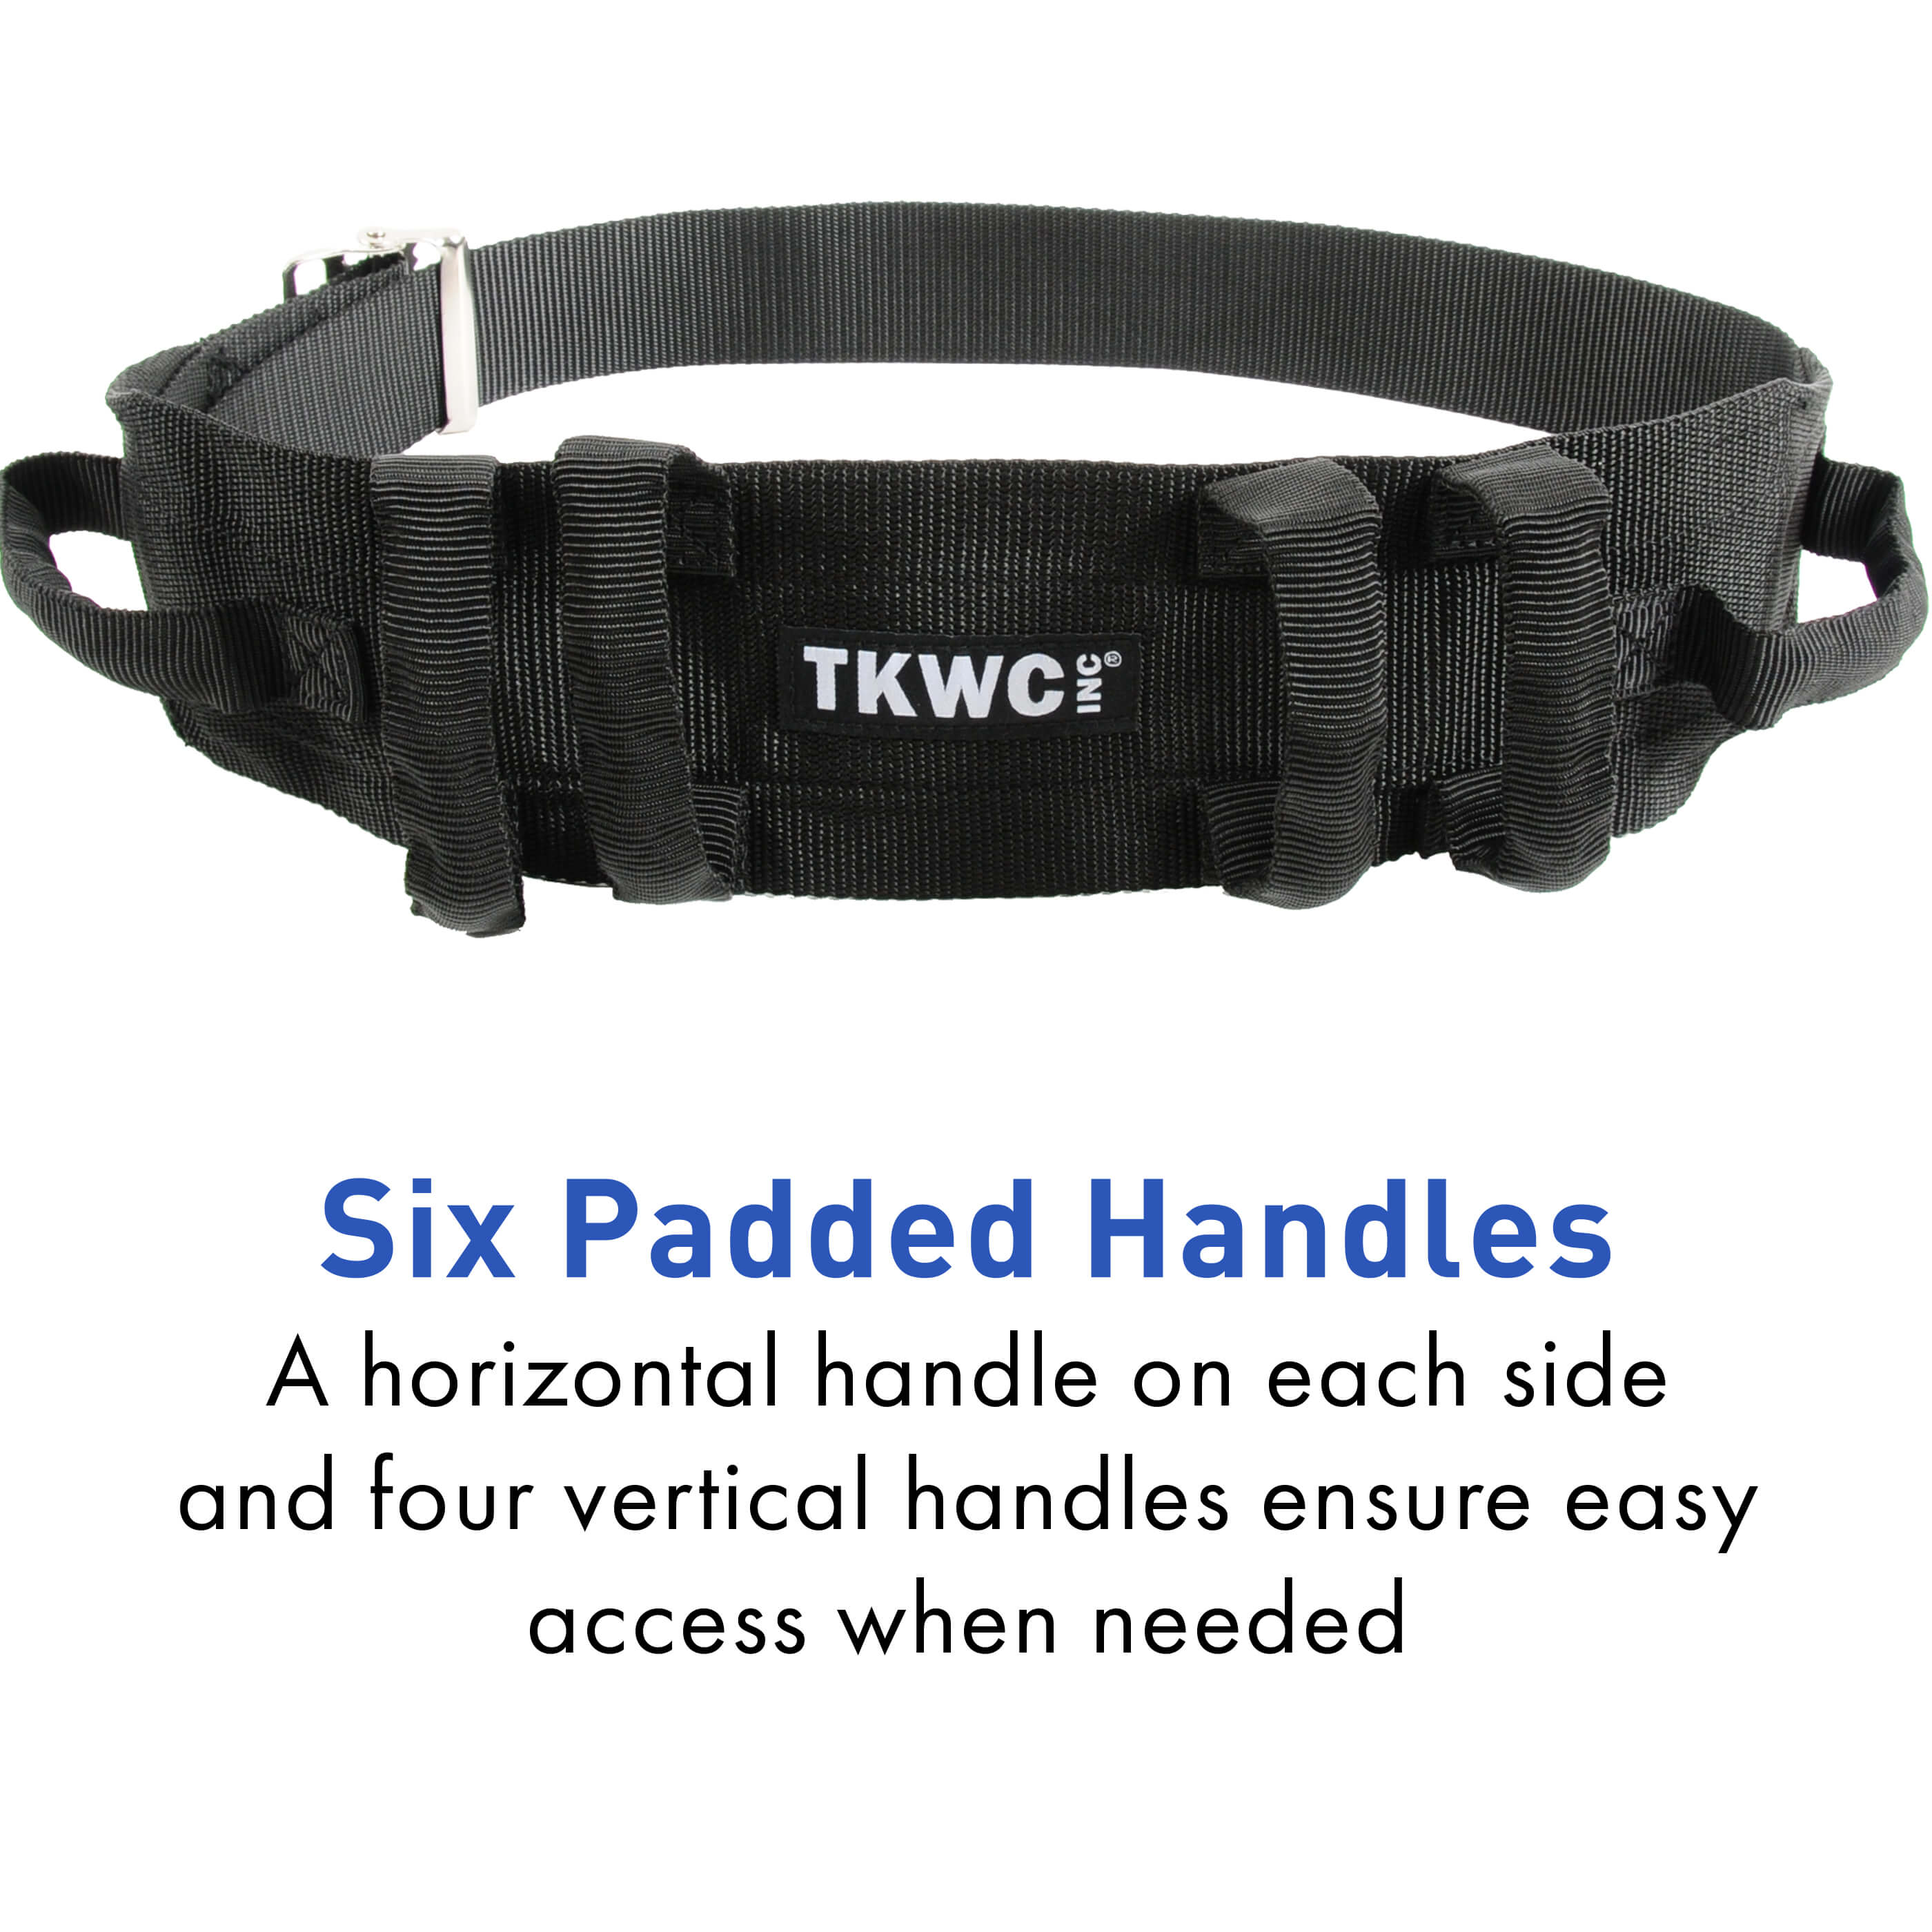 Six Padded Handles Transfer Belt